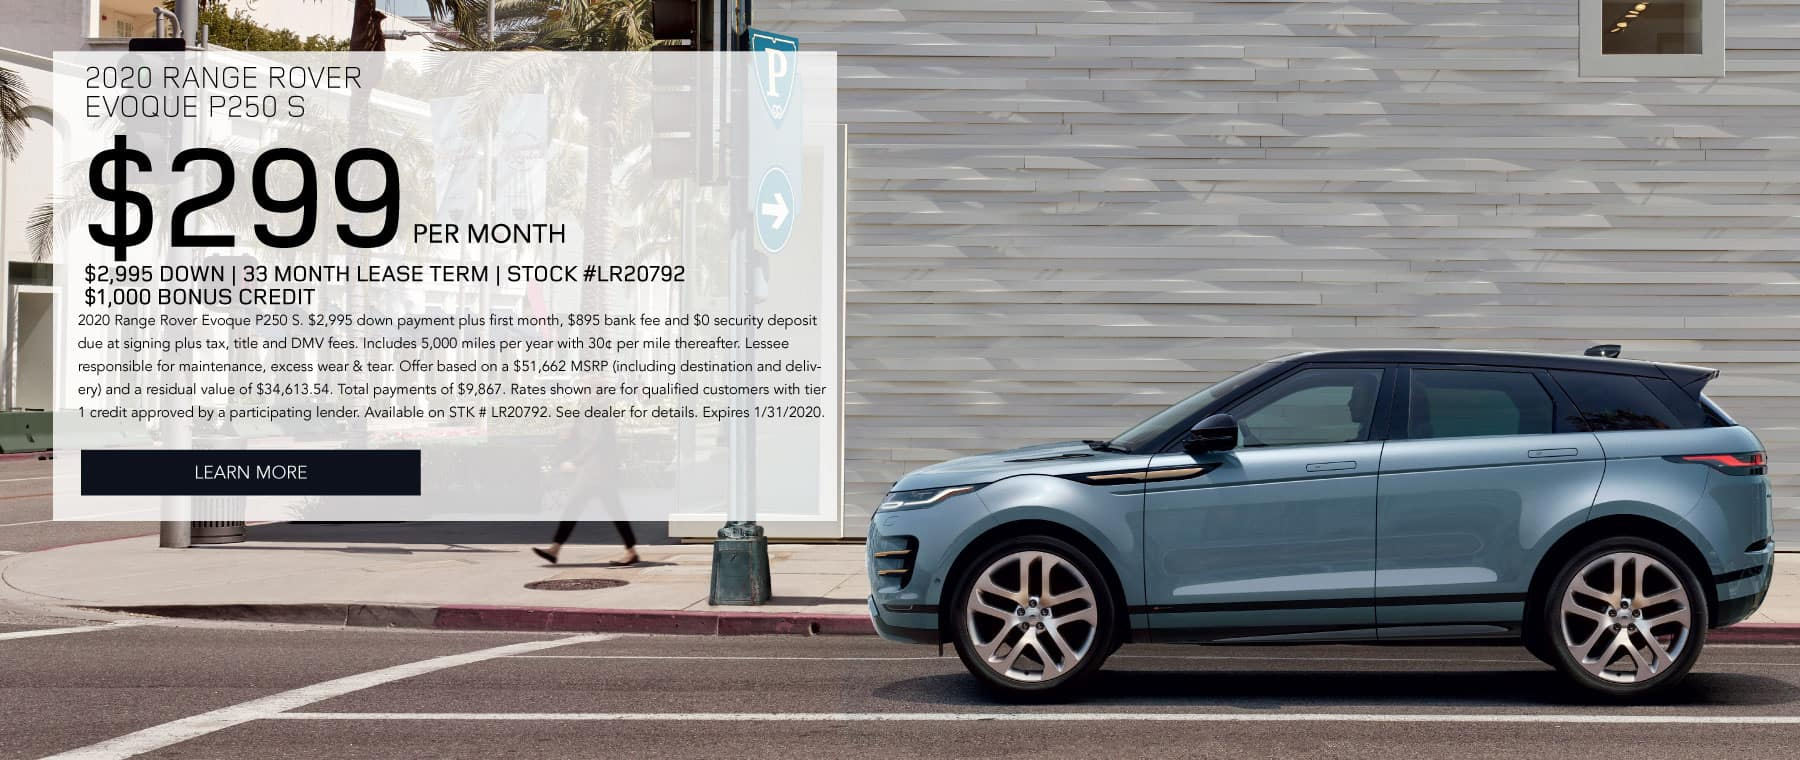 2020 RANGE ROVER  EVOQUE P250 S $299 PER MONTH  $2,995 DOWN 33 MONTH LEASE TERM STOCK #LR20792 $1,000 BONUS CREDIT 2020 Range Rover Evoque P250 S. $2,995 down payment plus first month, $895 bank fee and $0 security deposit due at signing plus tax, title and DMV fees. Includes 5,000 miles per year with 30¢ per mile thereafter. Lessee responsible for maintenance, excess wear & tear. Offer based on a $51,662 MSRP (including destination and delivery) and a residual value of $34,613.54. Total payments of $9,867. Rates shown are for qualified customers with tier 1 credit approved by a participating lender. Available on STK # LR20792. See dealer for details. Expires 1/31/2020. Click to Learn more.  Blue Evoque on city background.